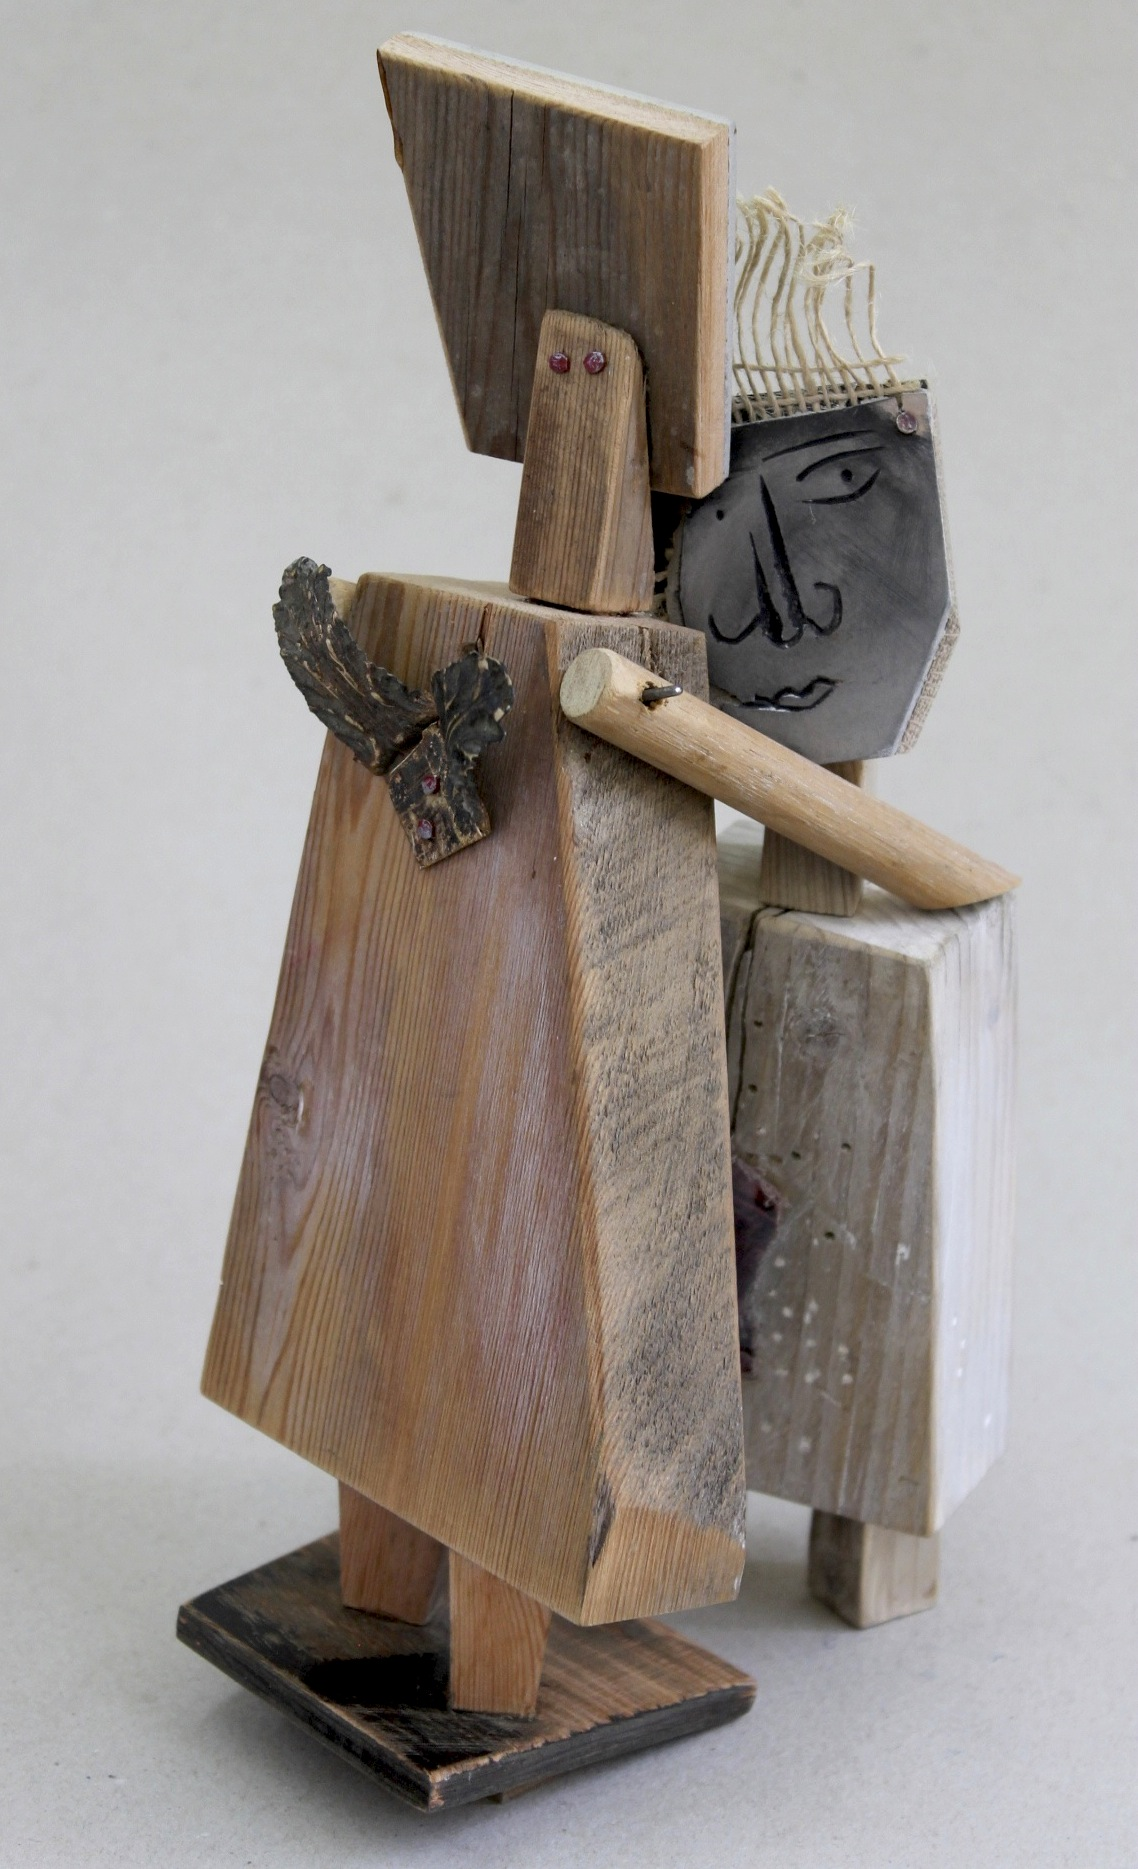 Foundlings: mixed media sculpture